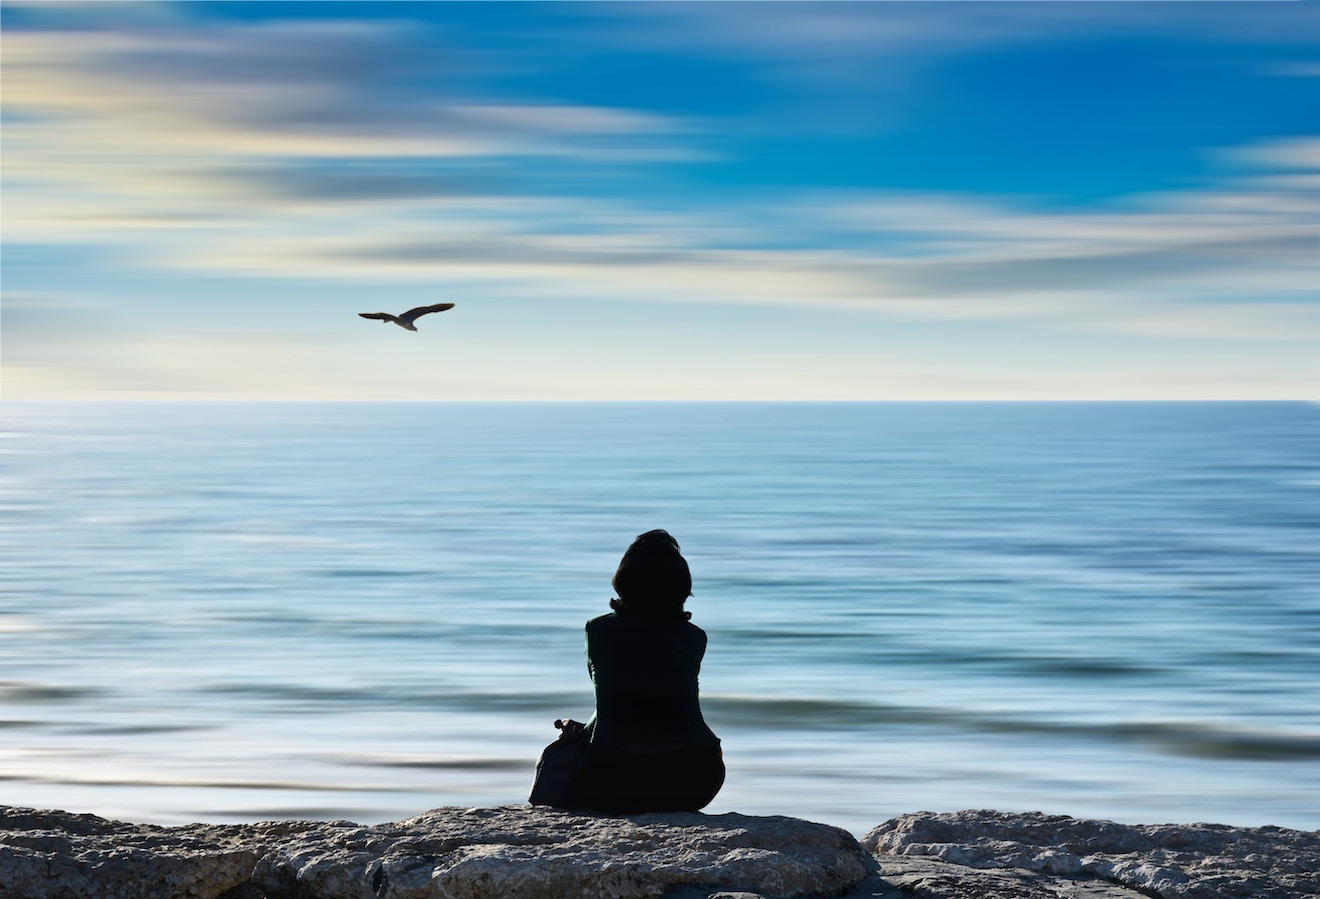 woman sits on rocks by ocean with a bird in the distance